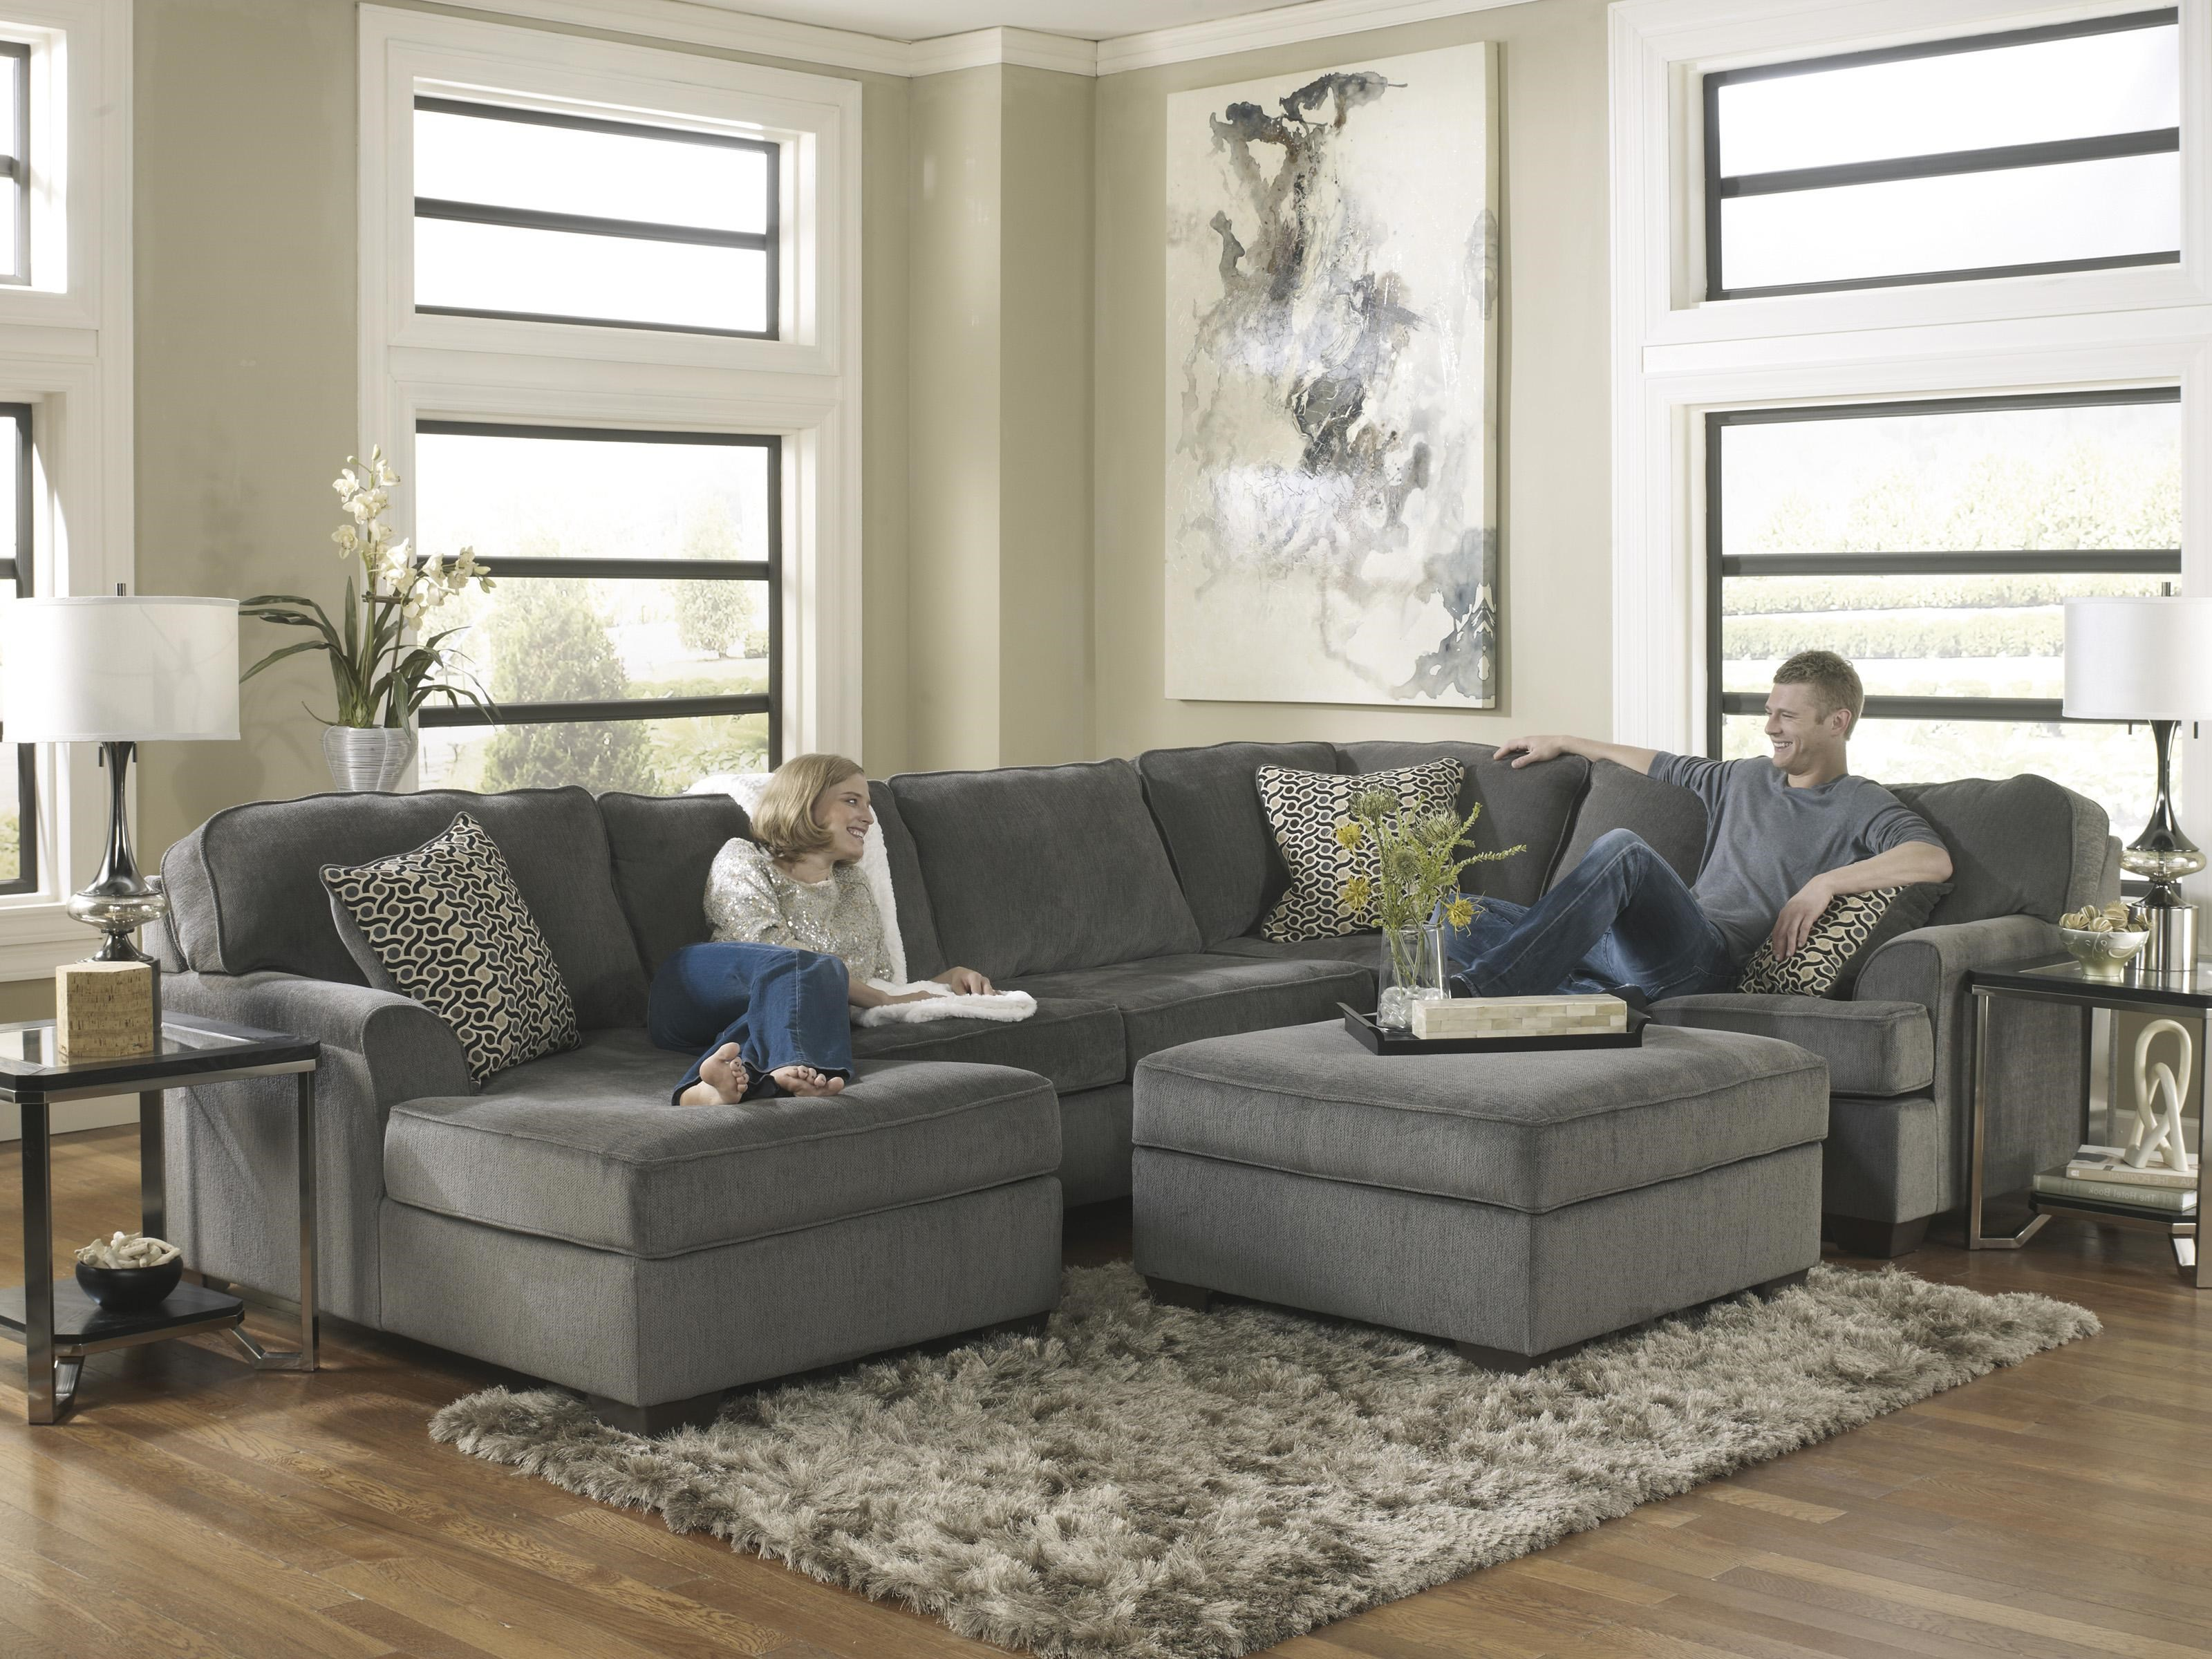 Loric - Smoke Contemporary 3-Piece Sectional with Left Chaise by Ashley Furniture : ashley furniture sectional with chaise - Sectionals, Sofas & Couches